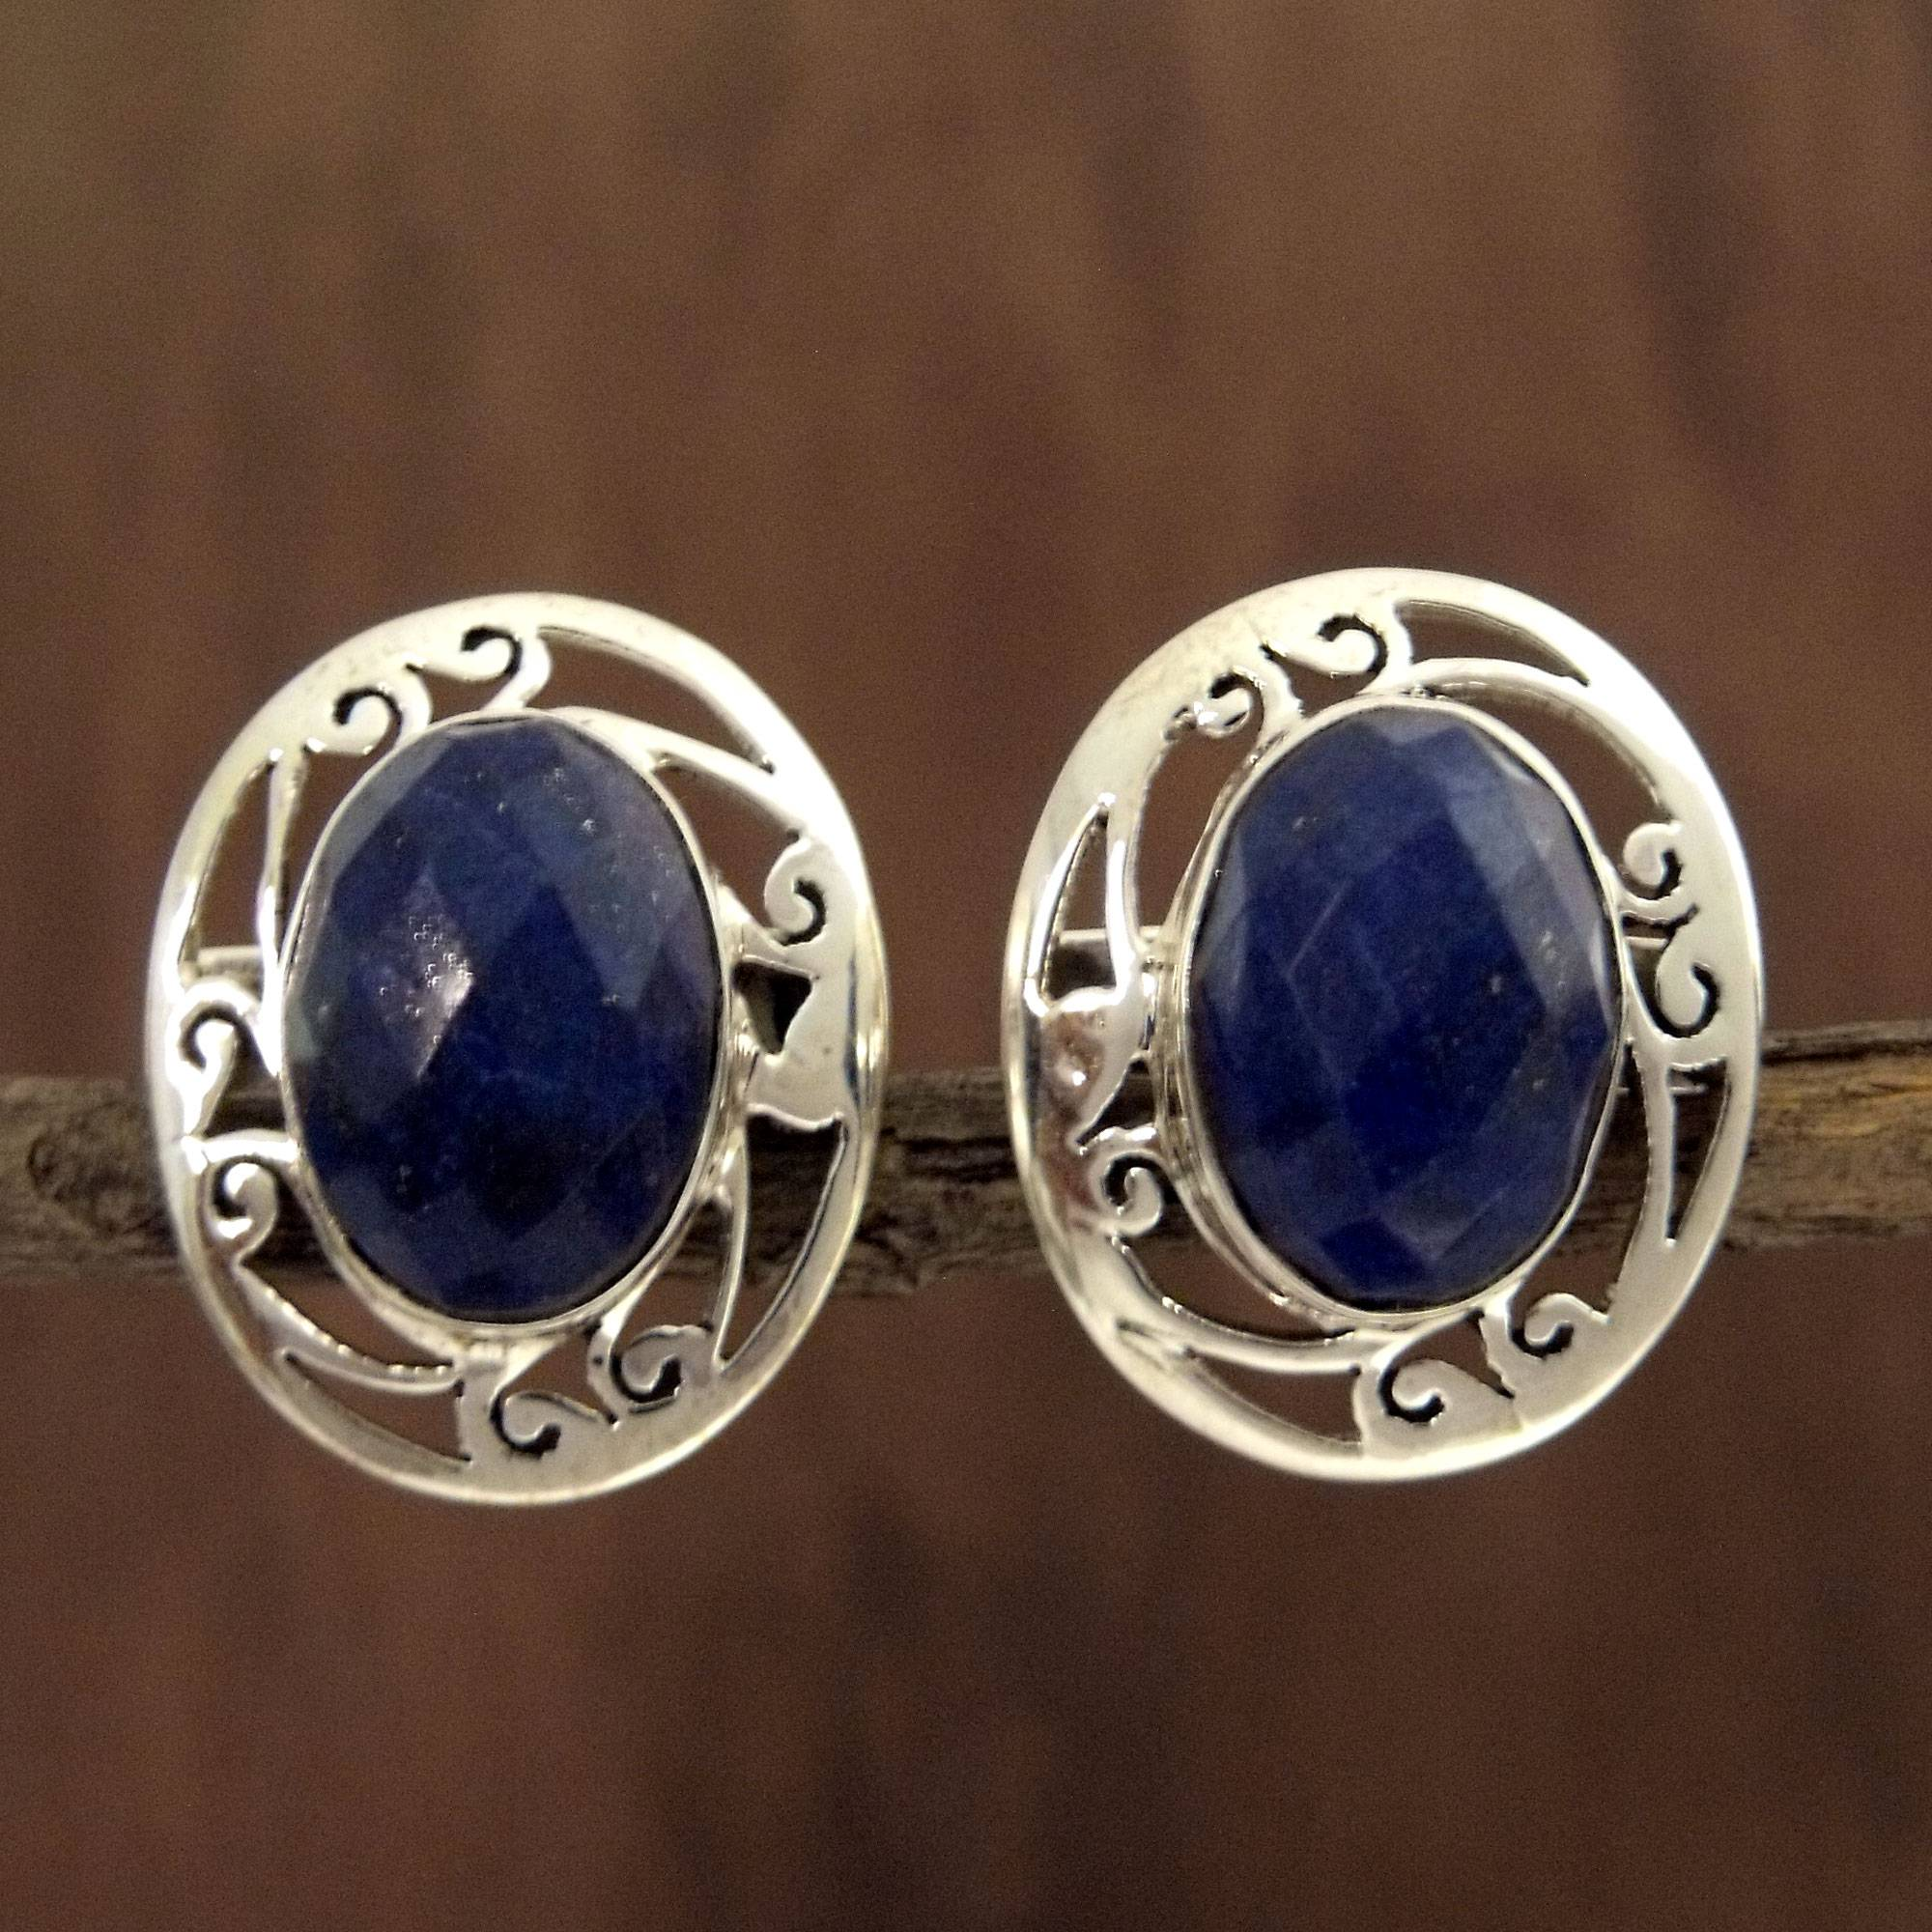 c90ff0884 Unicef UK Market | Women's Earrings Sterling Silver and Lapis Lazuli ...